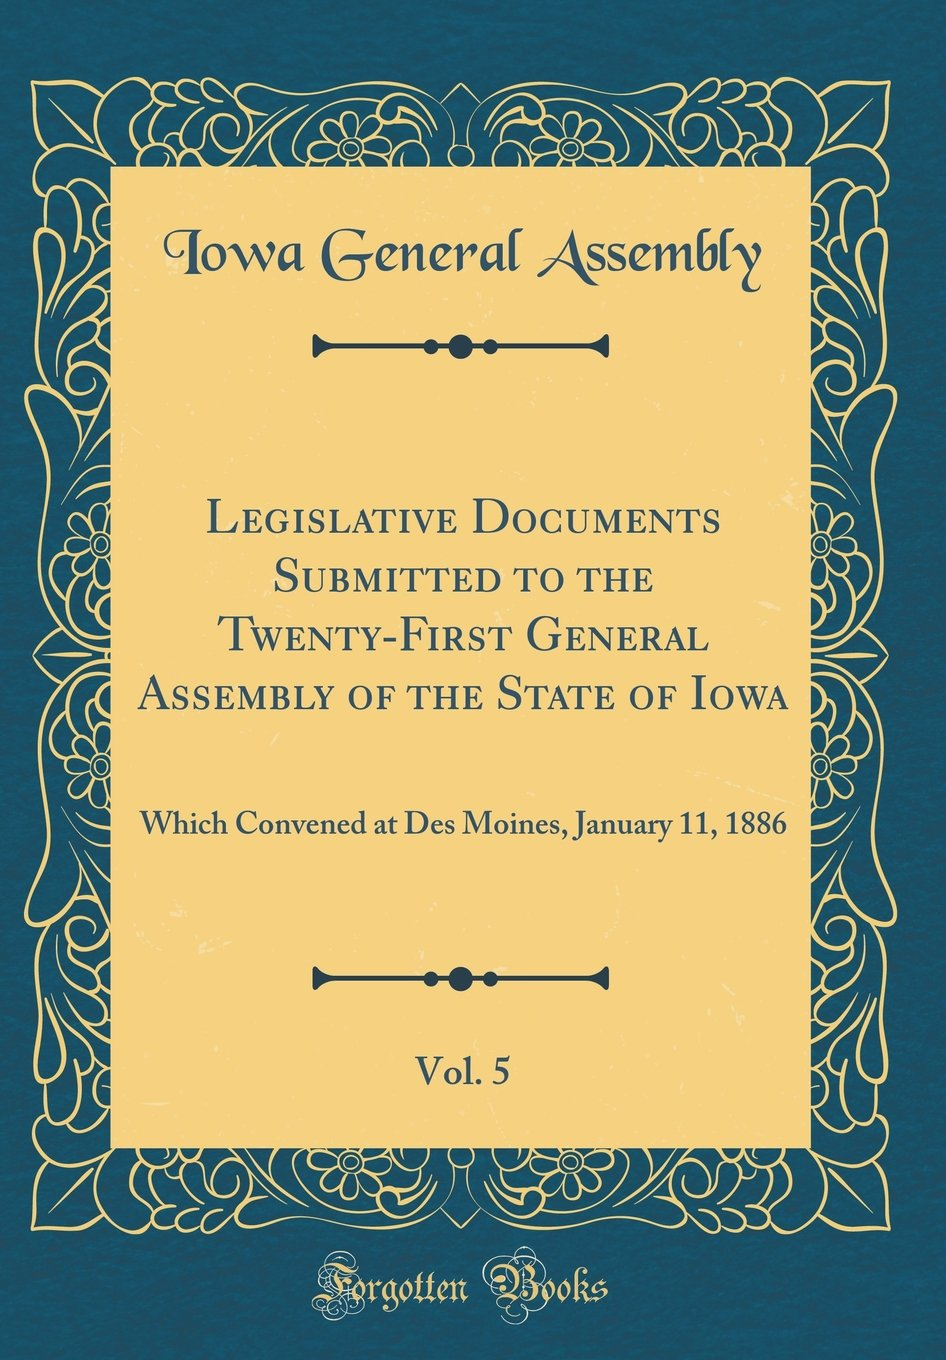 Download Legislative Documents Submitted to the Twenty-First General Assembly of the State of Iowa, Vol. 5: Which Convened at Des Moines, January 11, 1886 (Classic Reprint) pdf